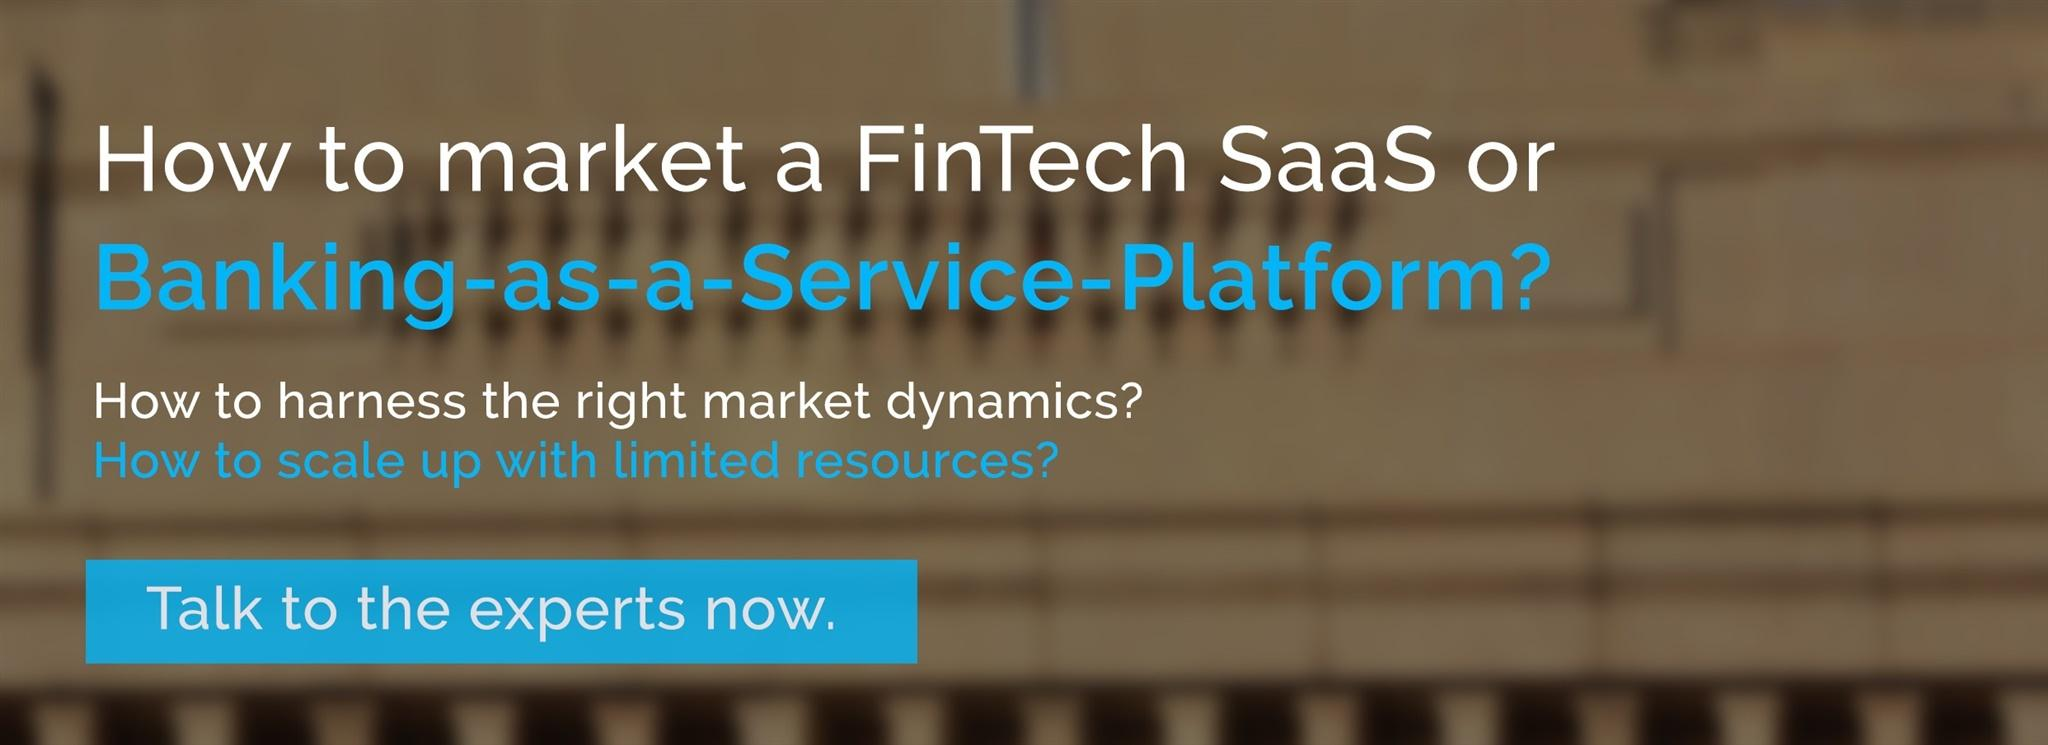 How to market FinTechs